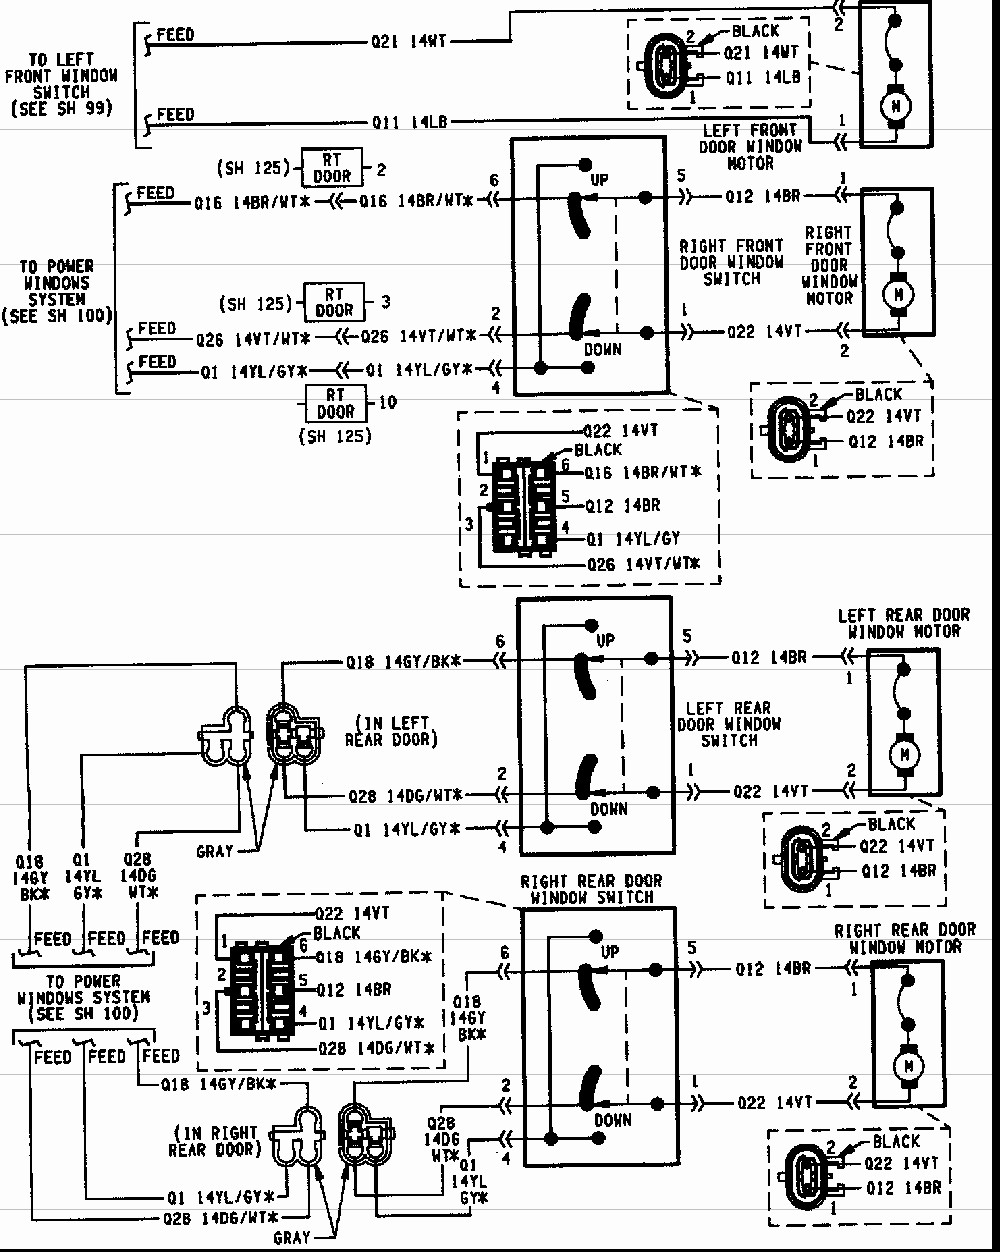 speedo wiring diagram 04 liberty